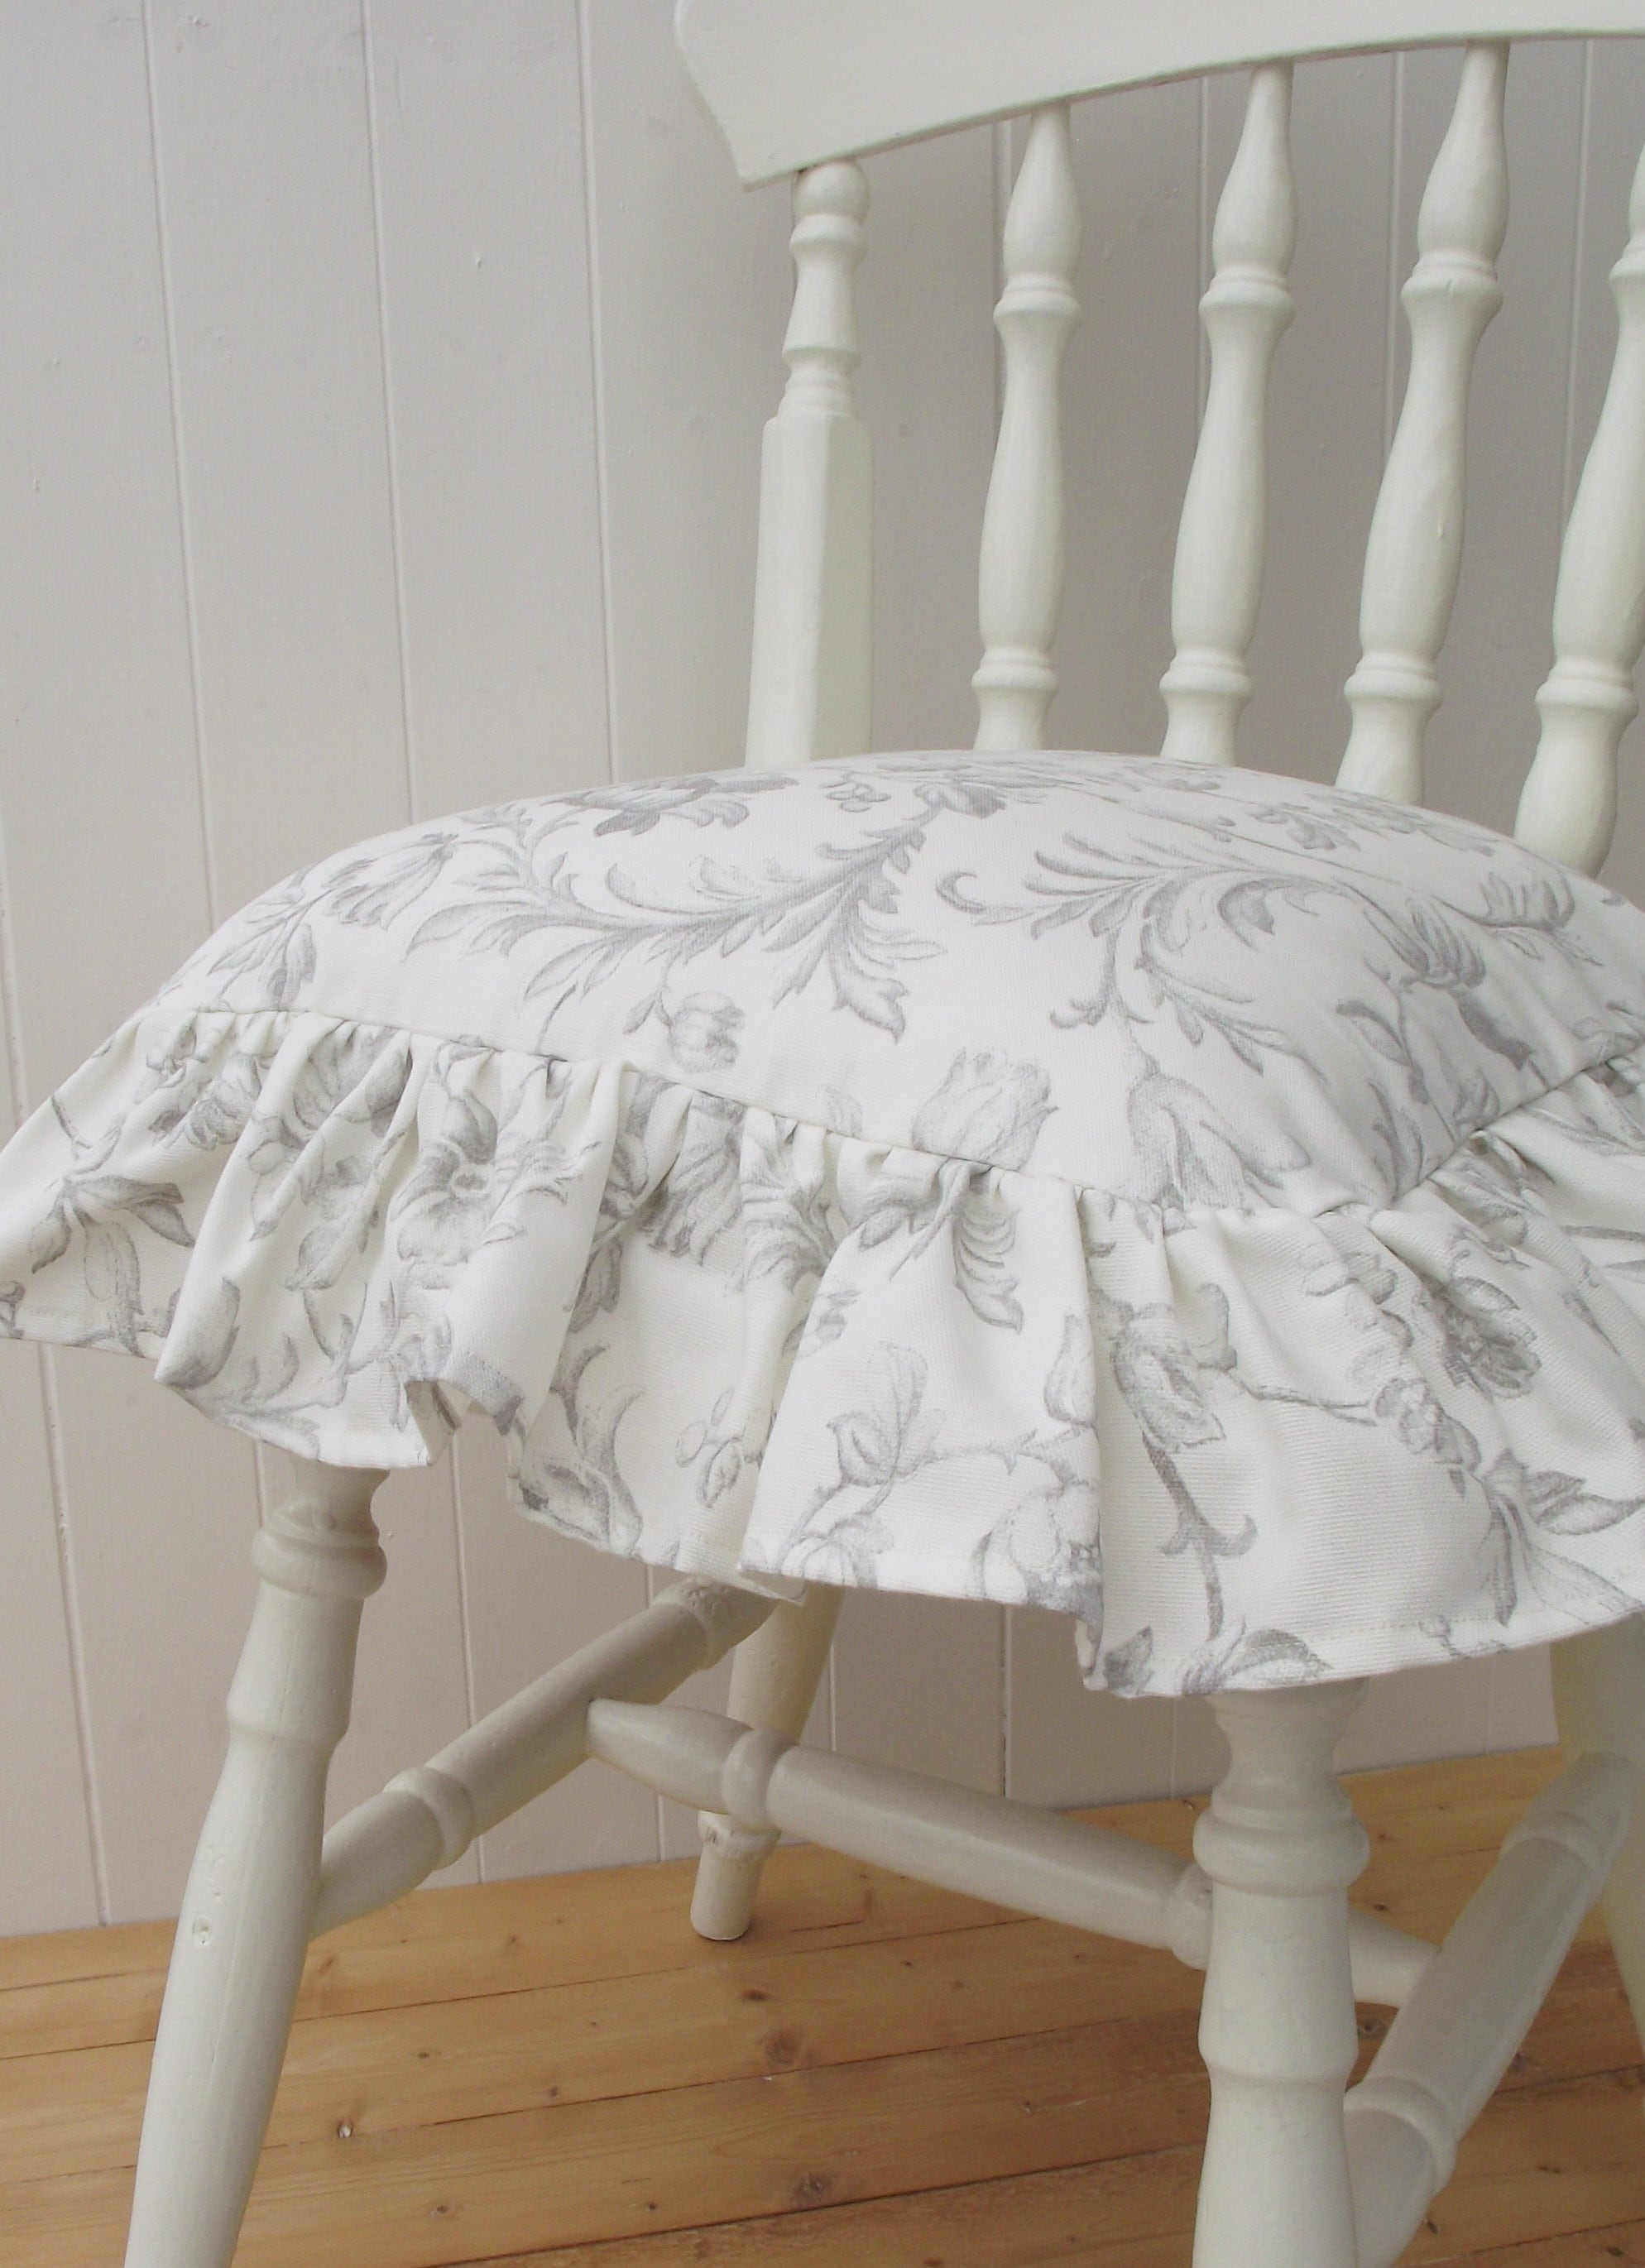 Frilled Grey Dining chair Seat Pad, Laura Ashley Iron Work Scroll Rustic  Farmhouse Chair Cushion with Bow Fastener, Includes Feather